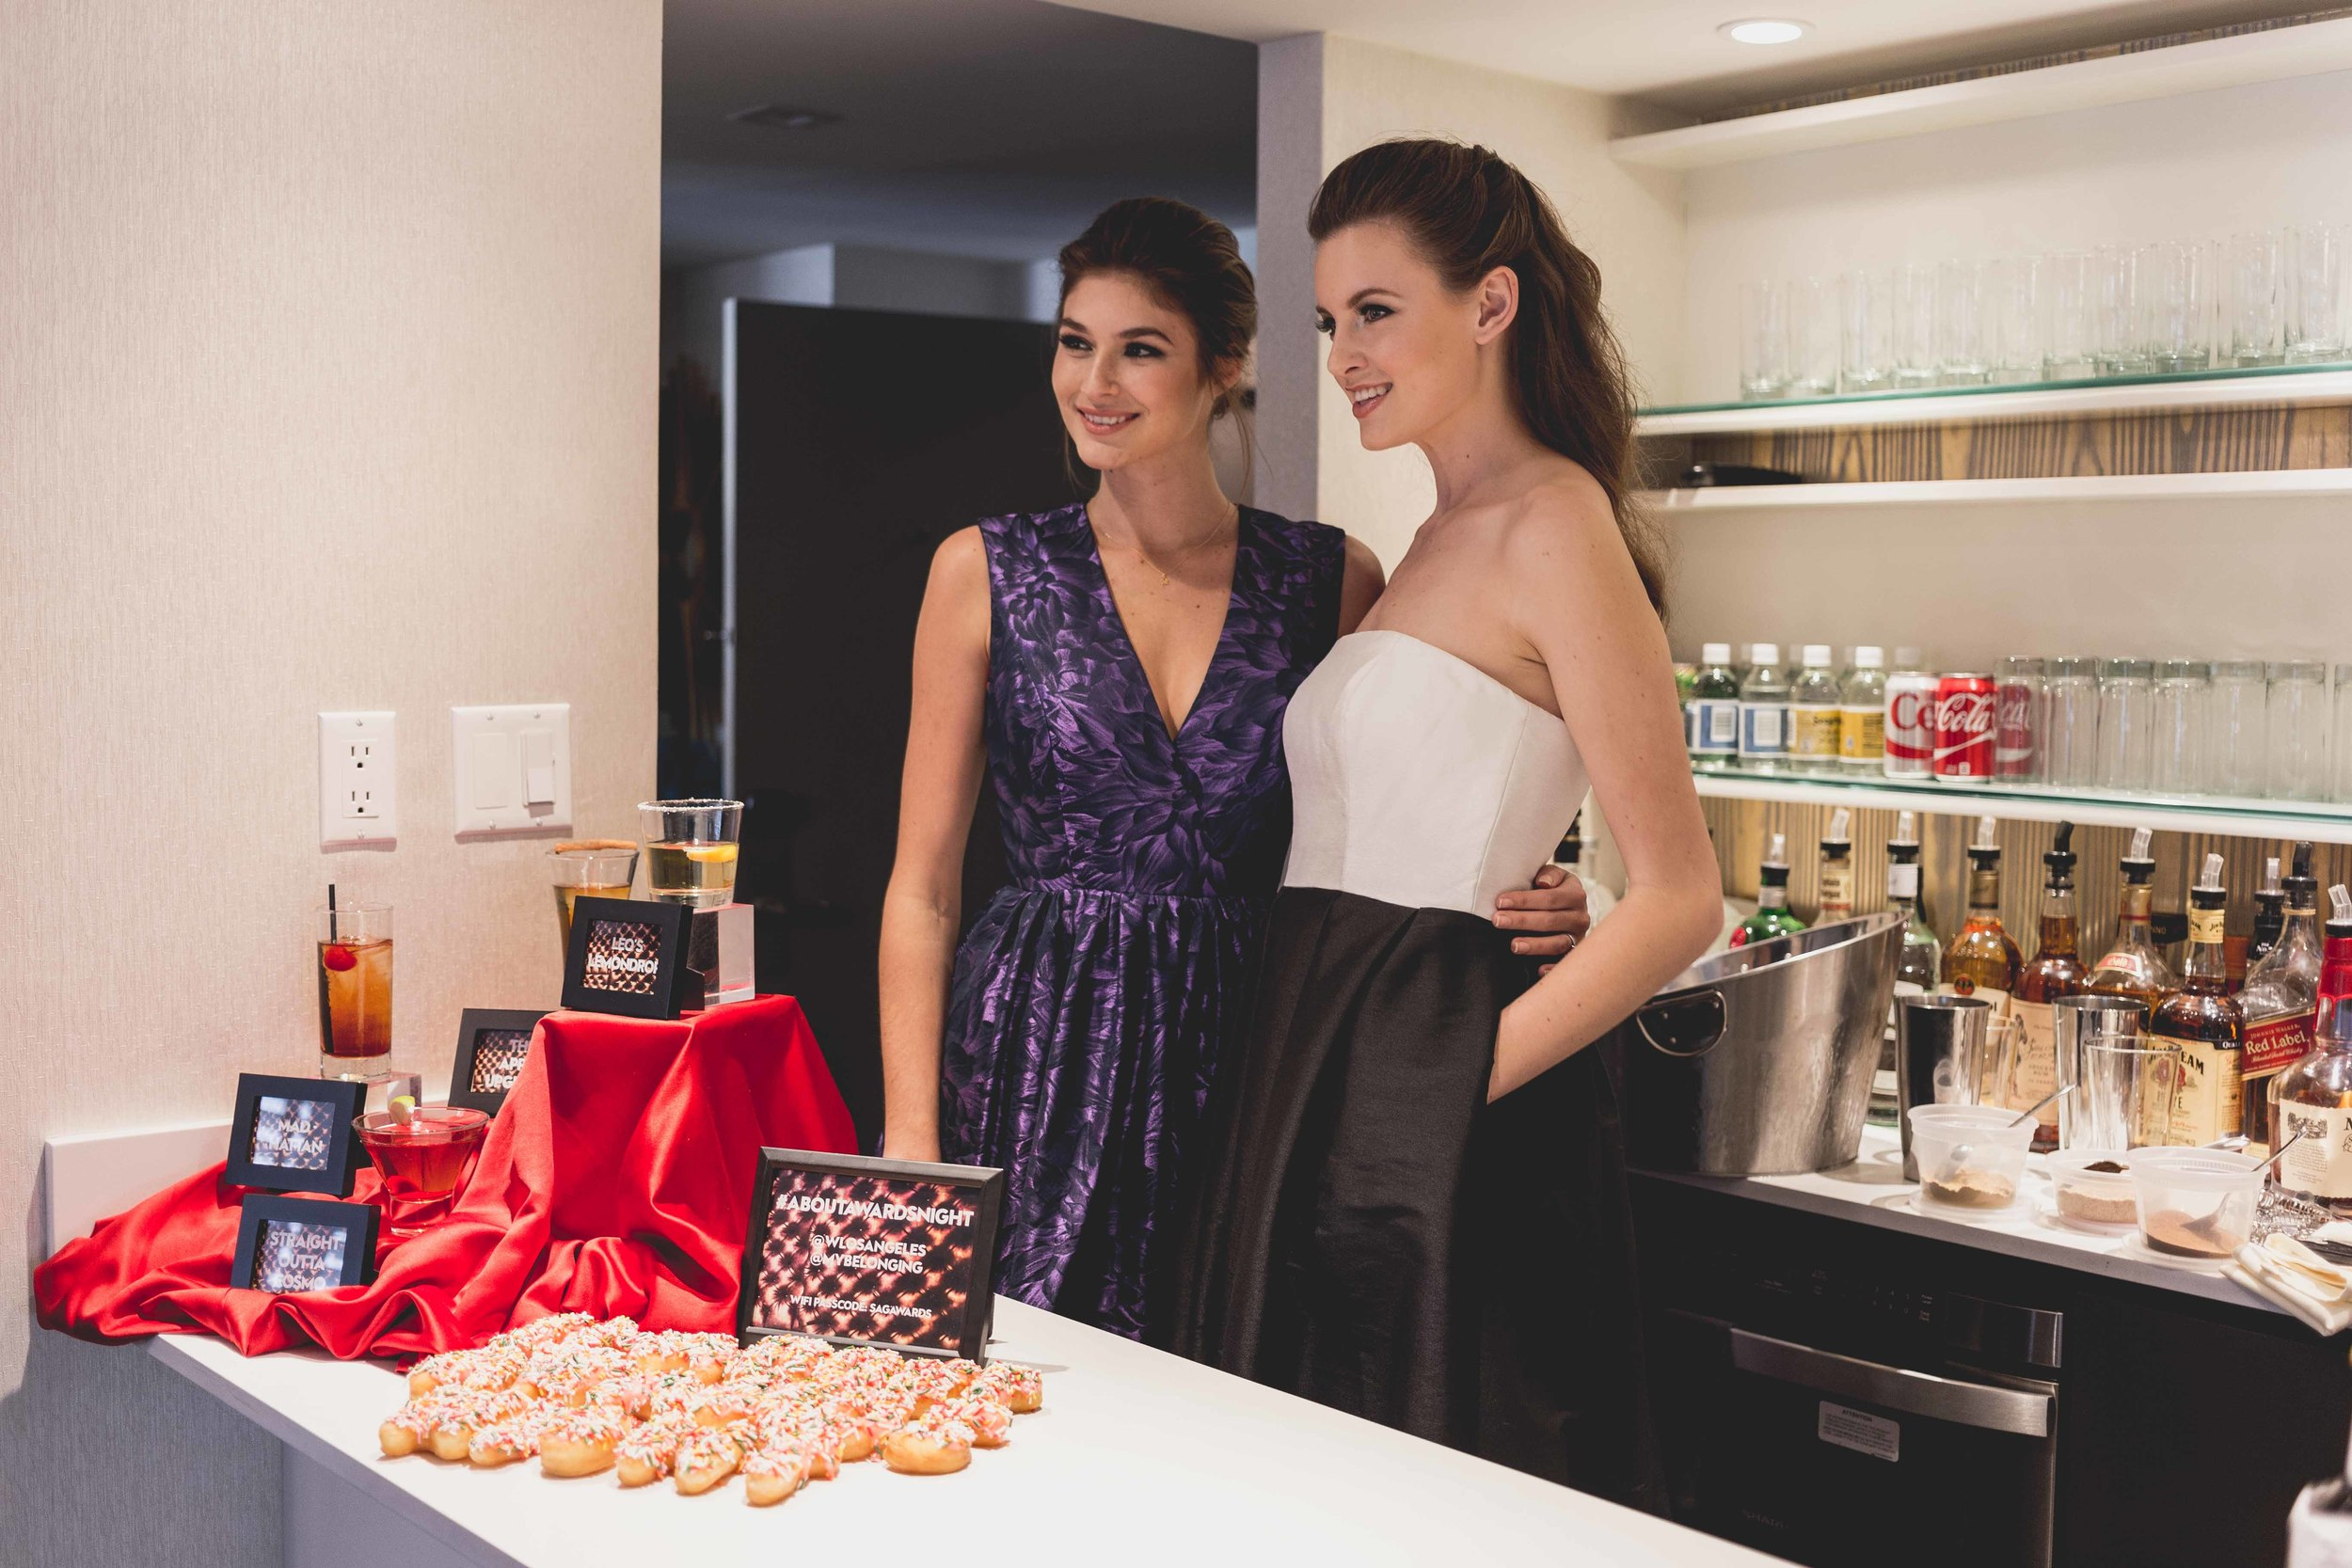 mybelonging-whotels-west-beverly-hills-EWOW-suite-19.jpg